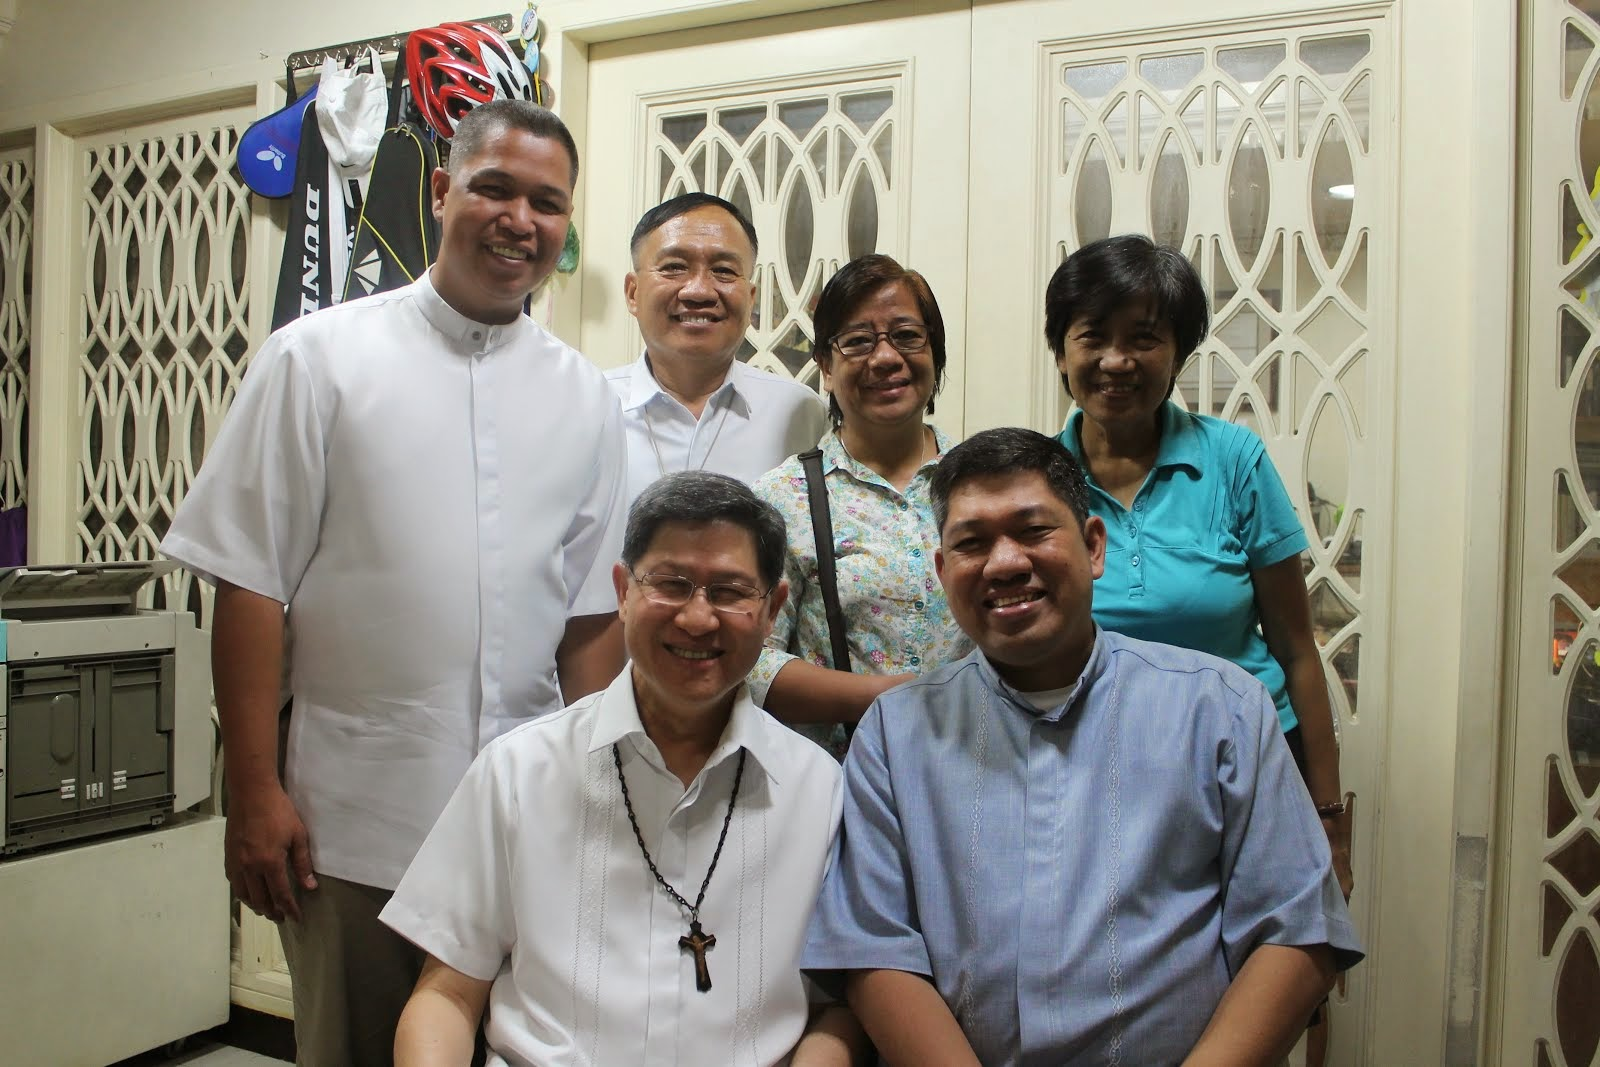 St. John Bosco Parish PPC with Cardinal Tagle